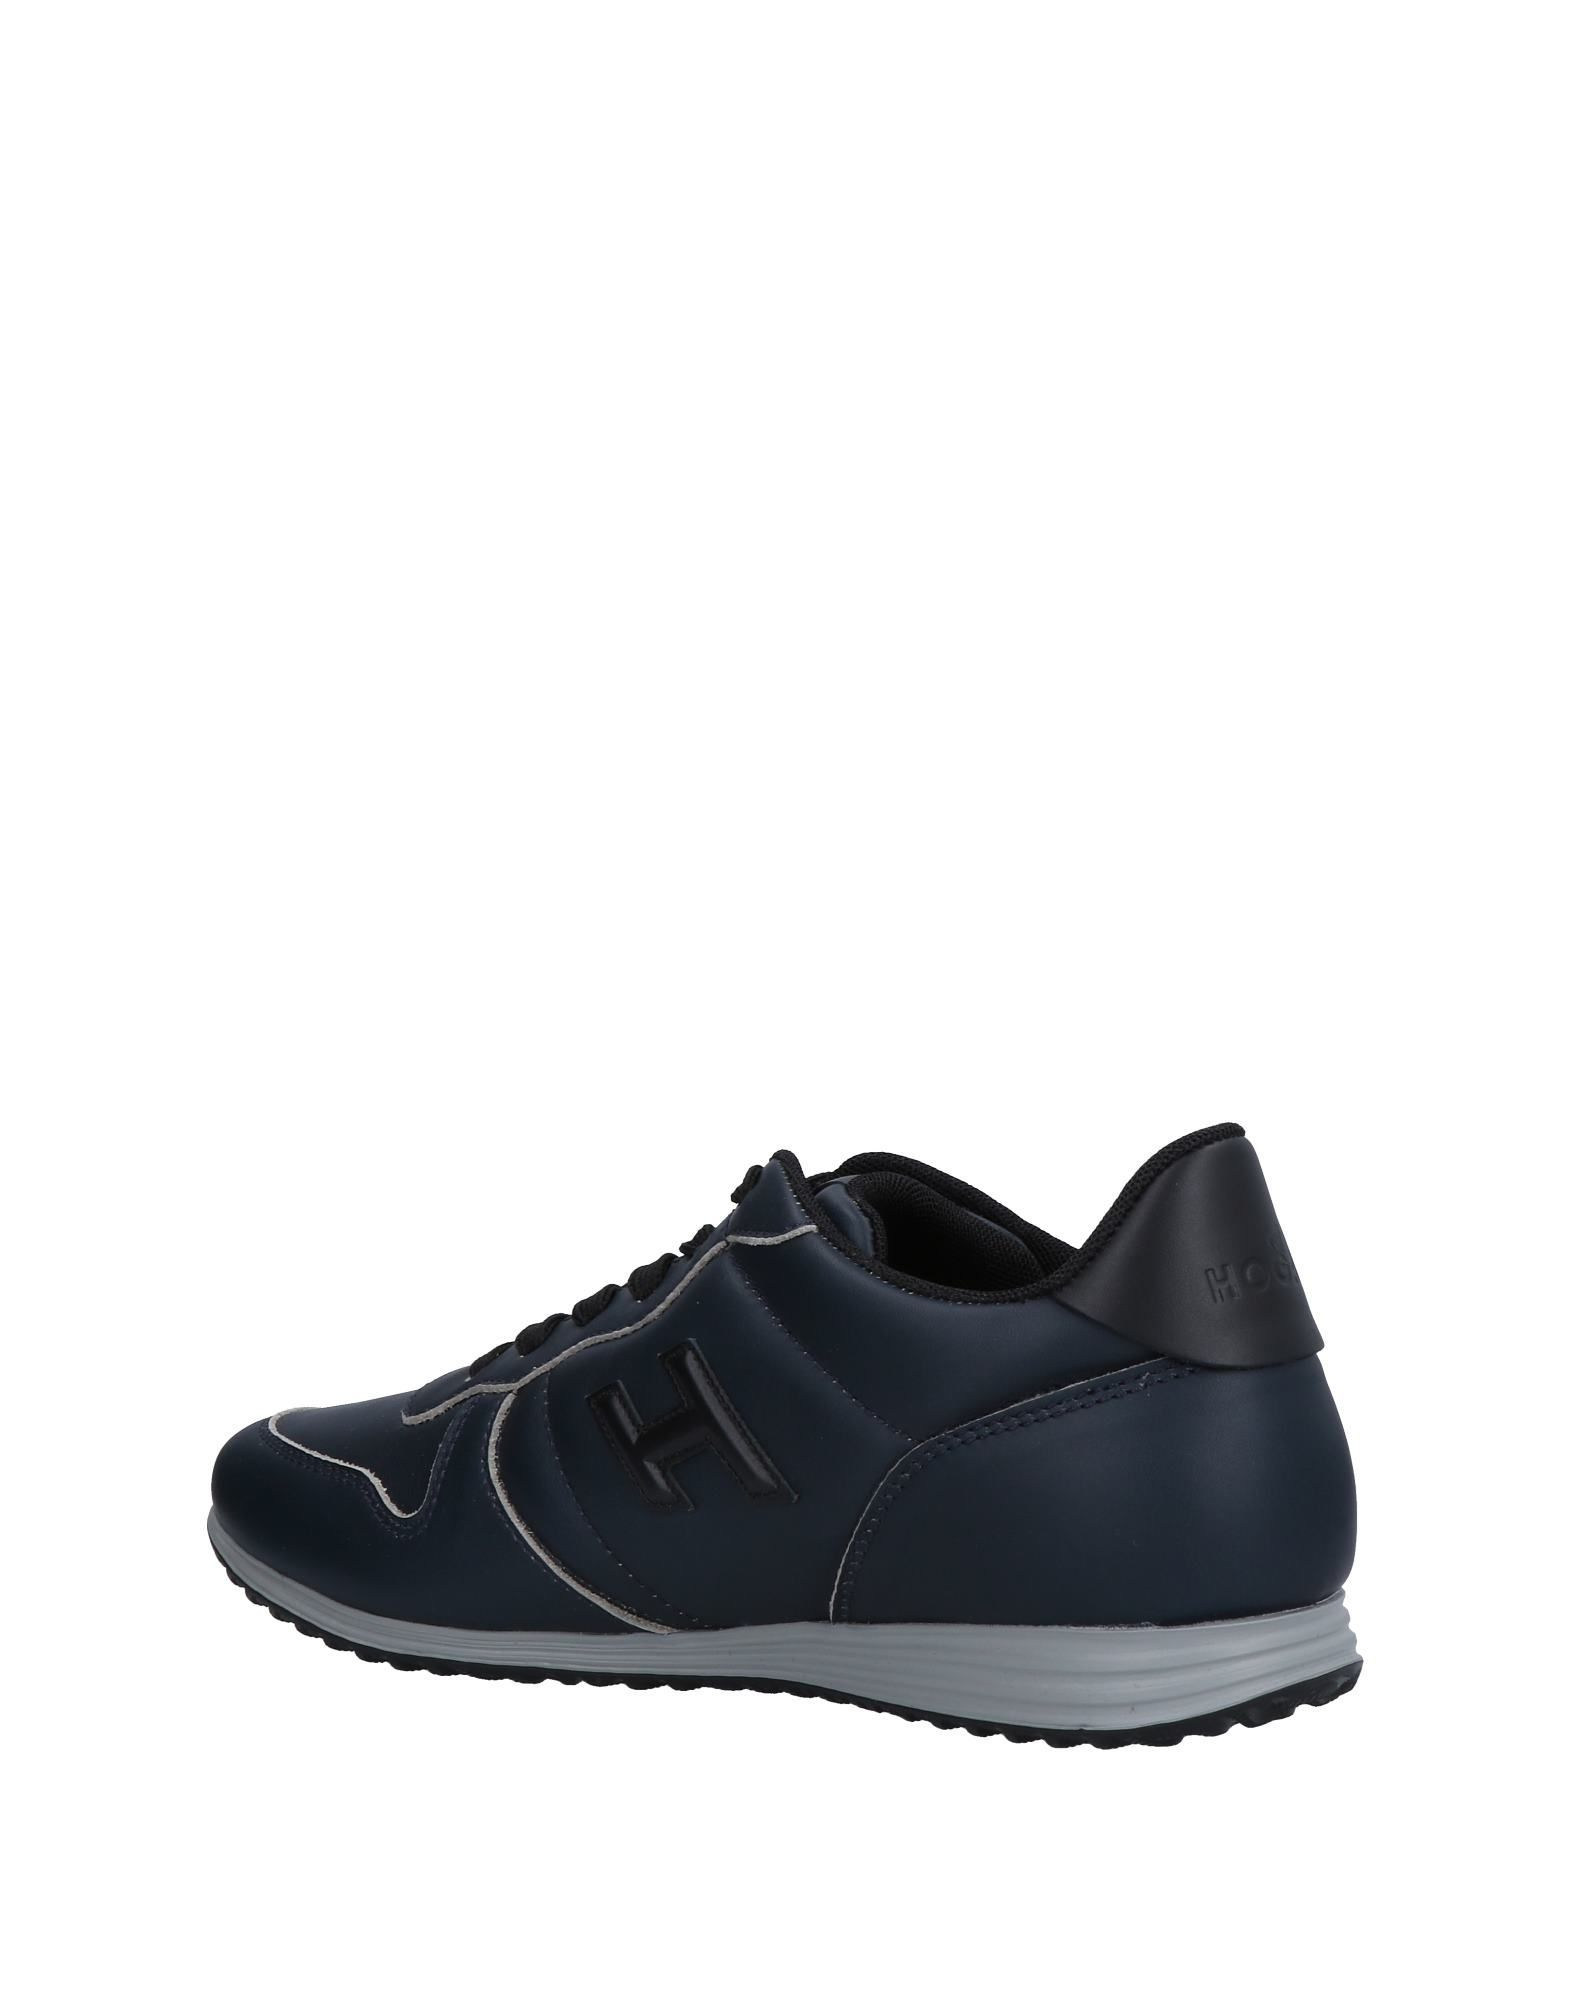 Hogan Dark Blue Leather Sneakers